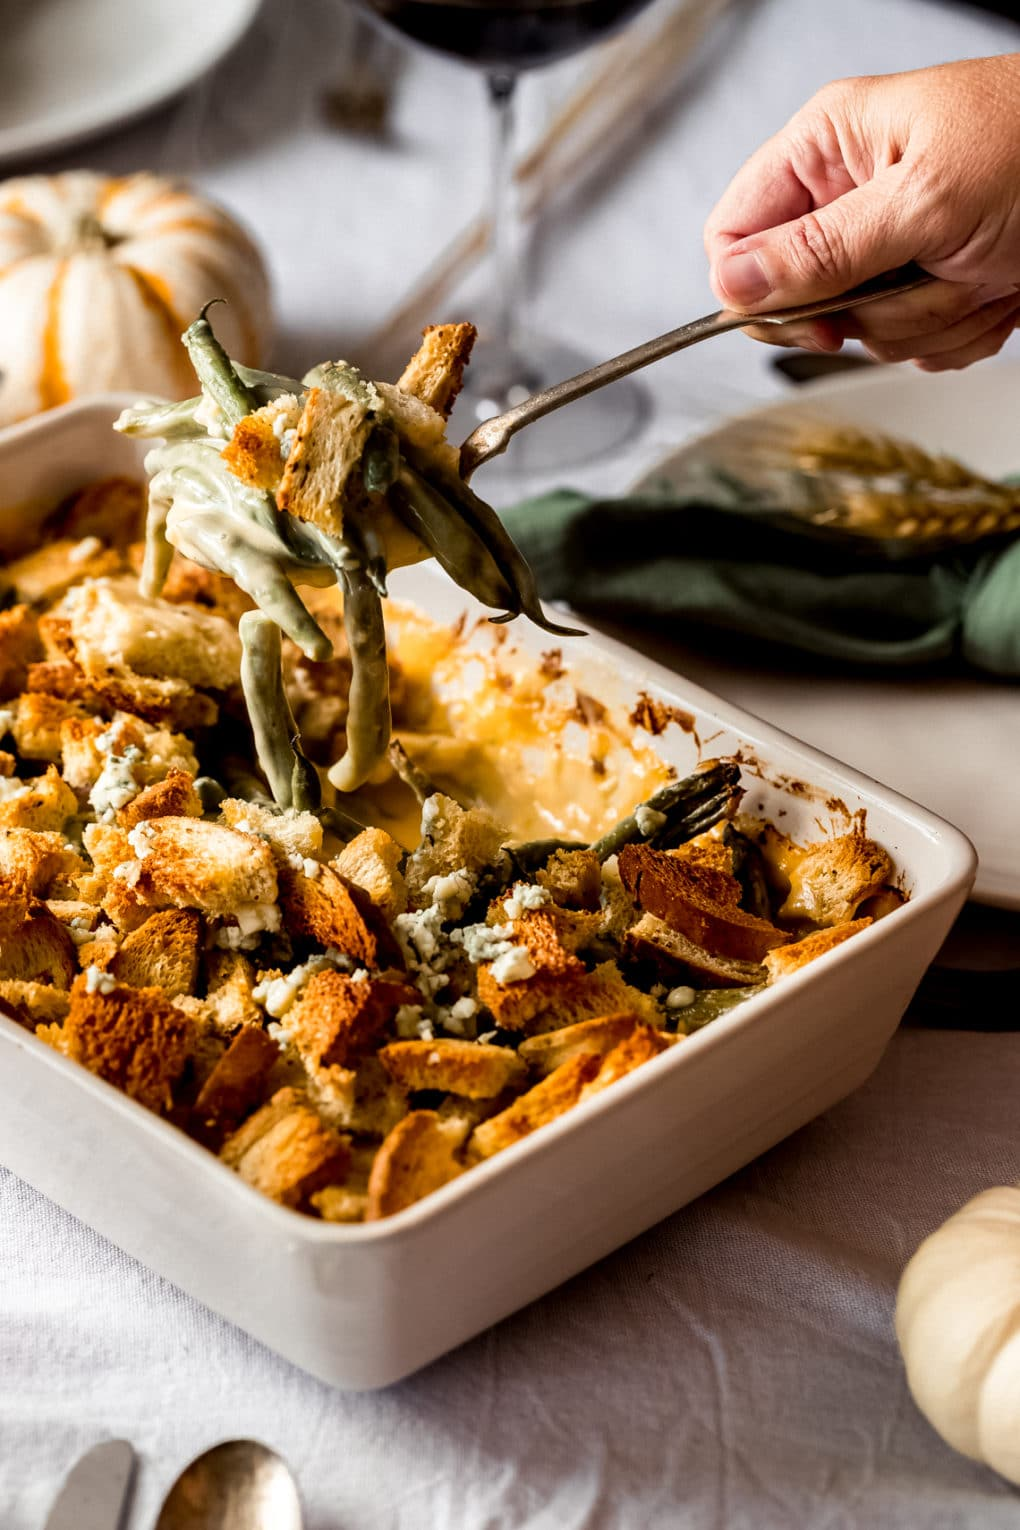 a woman serving up a spoonful of cheesy green bean casserole